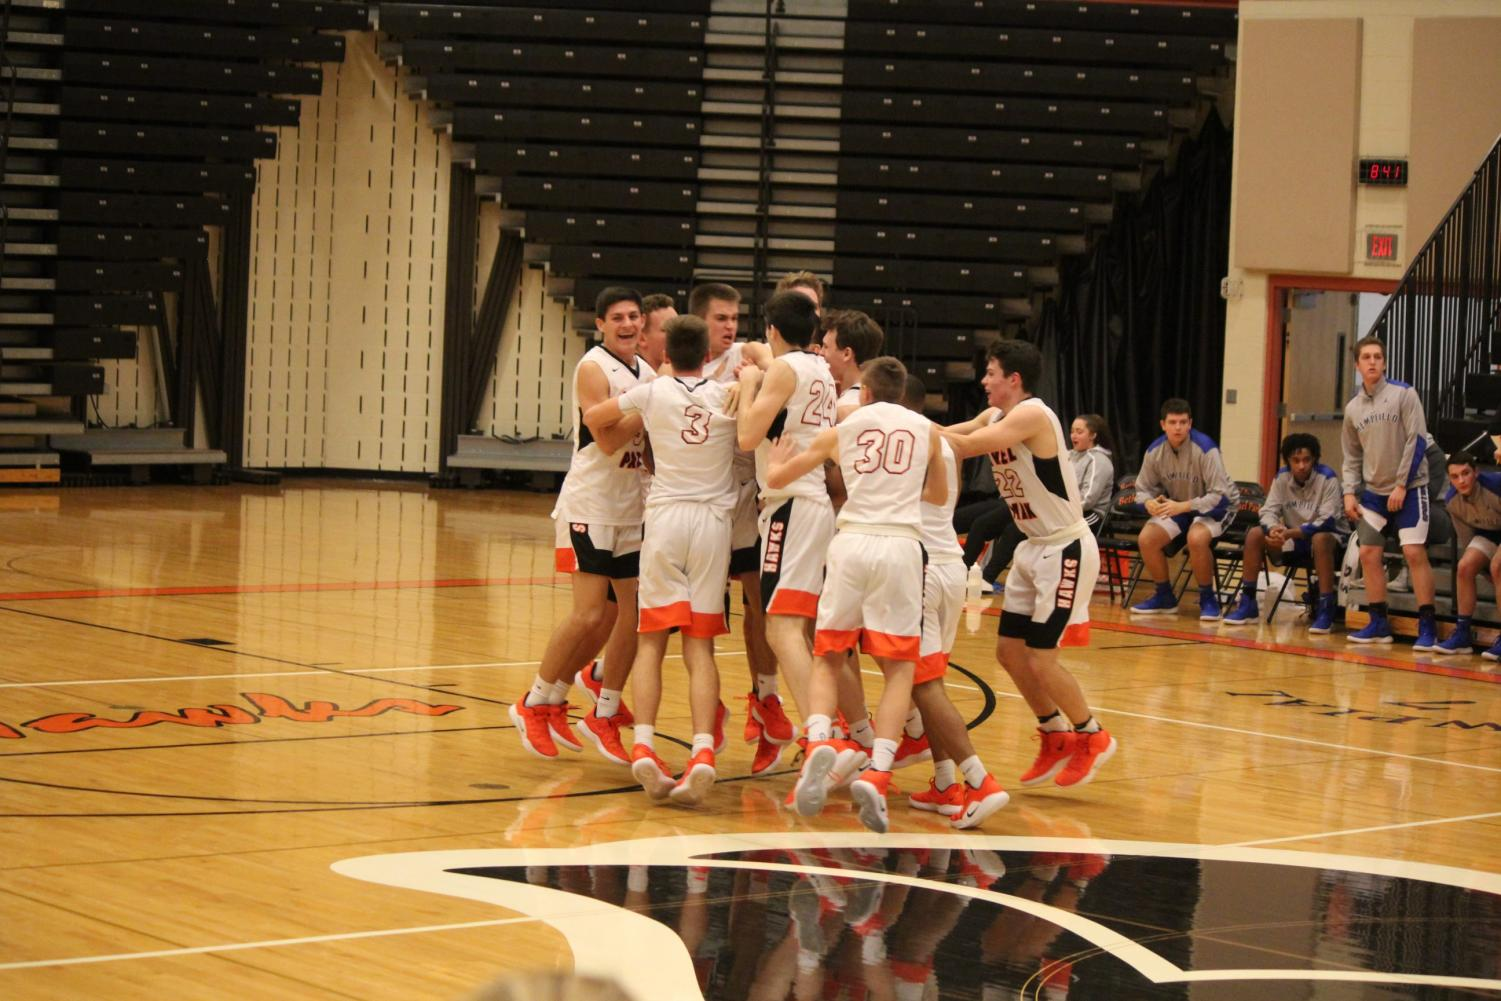 Hawks celebrate after their buzzer-beater victory over Hempfield on Dec. 19.